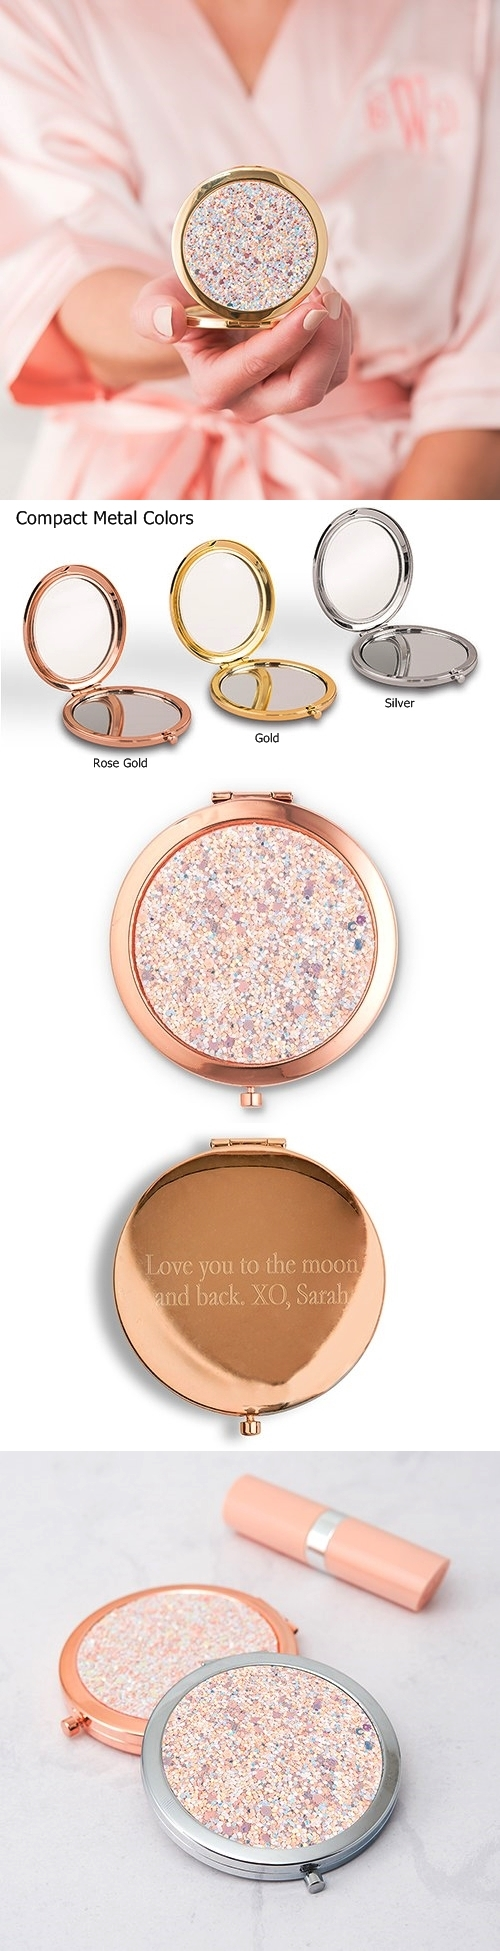 Weddingstar Personalizable Rose-Gold-Glitter Compact Mirror (3 Colors)